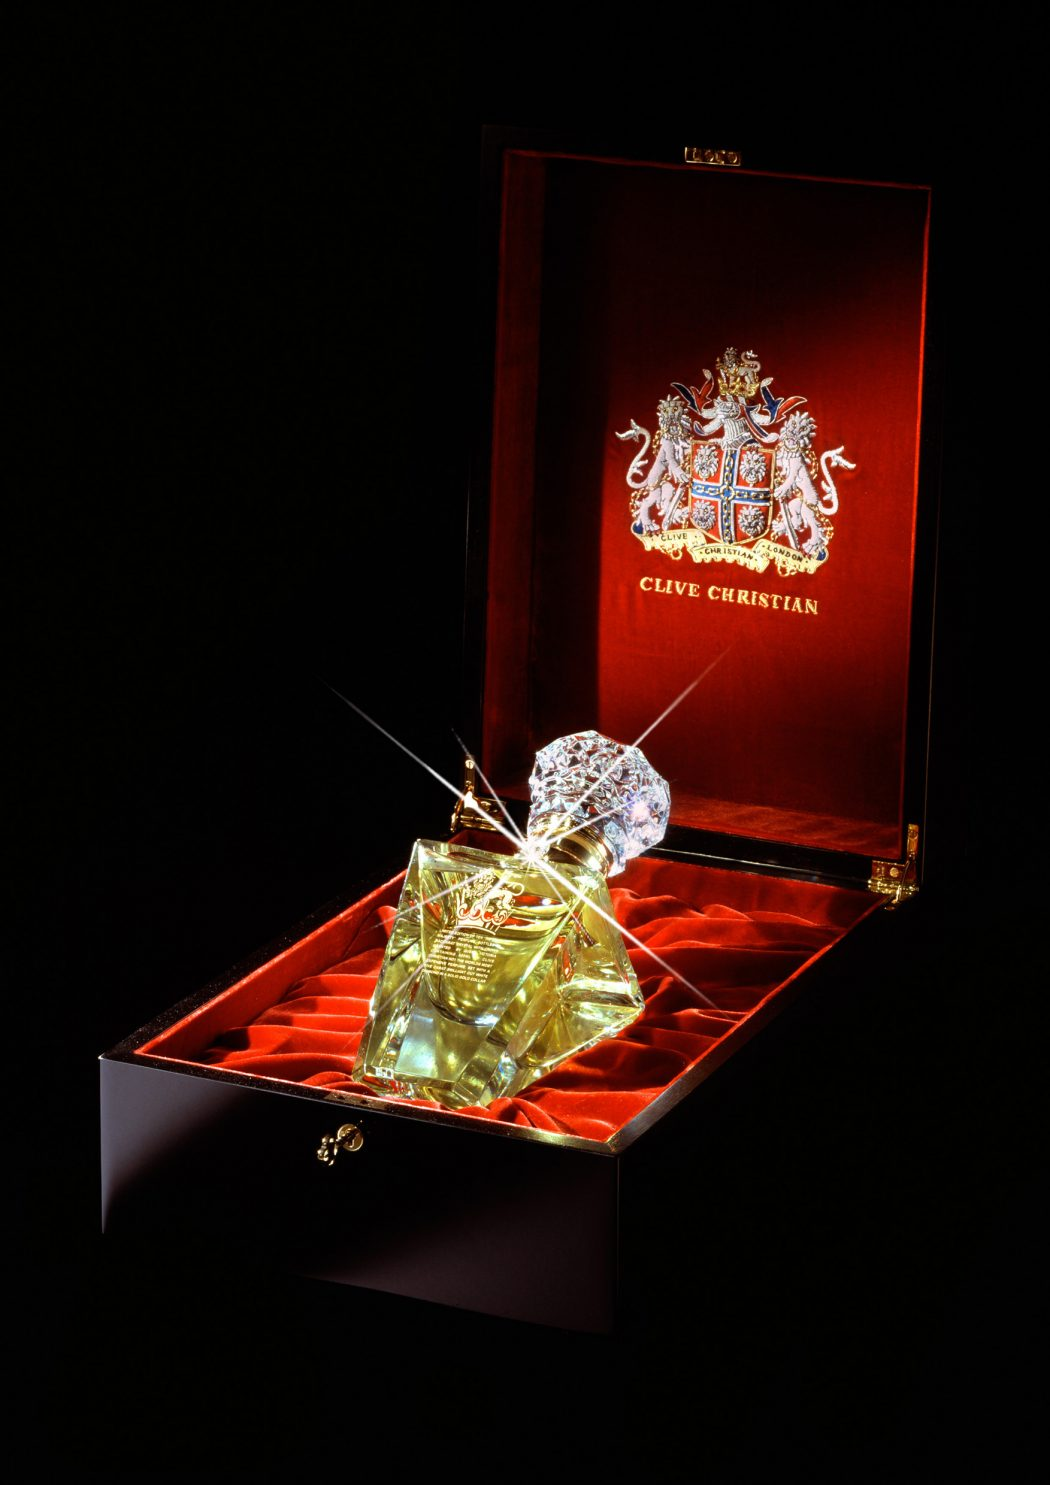 clive christian no 1 perfume imperial majesty edition photo 1 10 Most Expensive Perfumes for Women in The World 2013